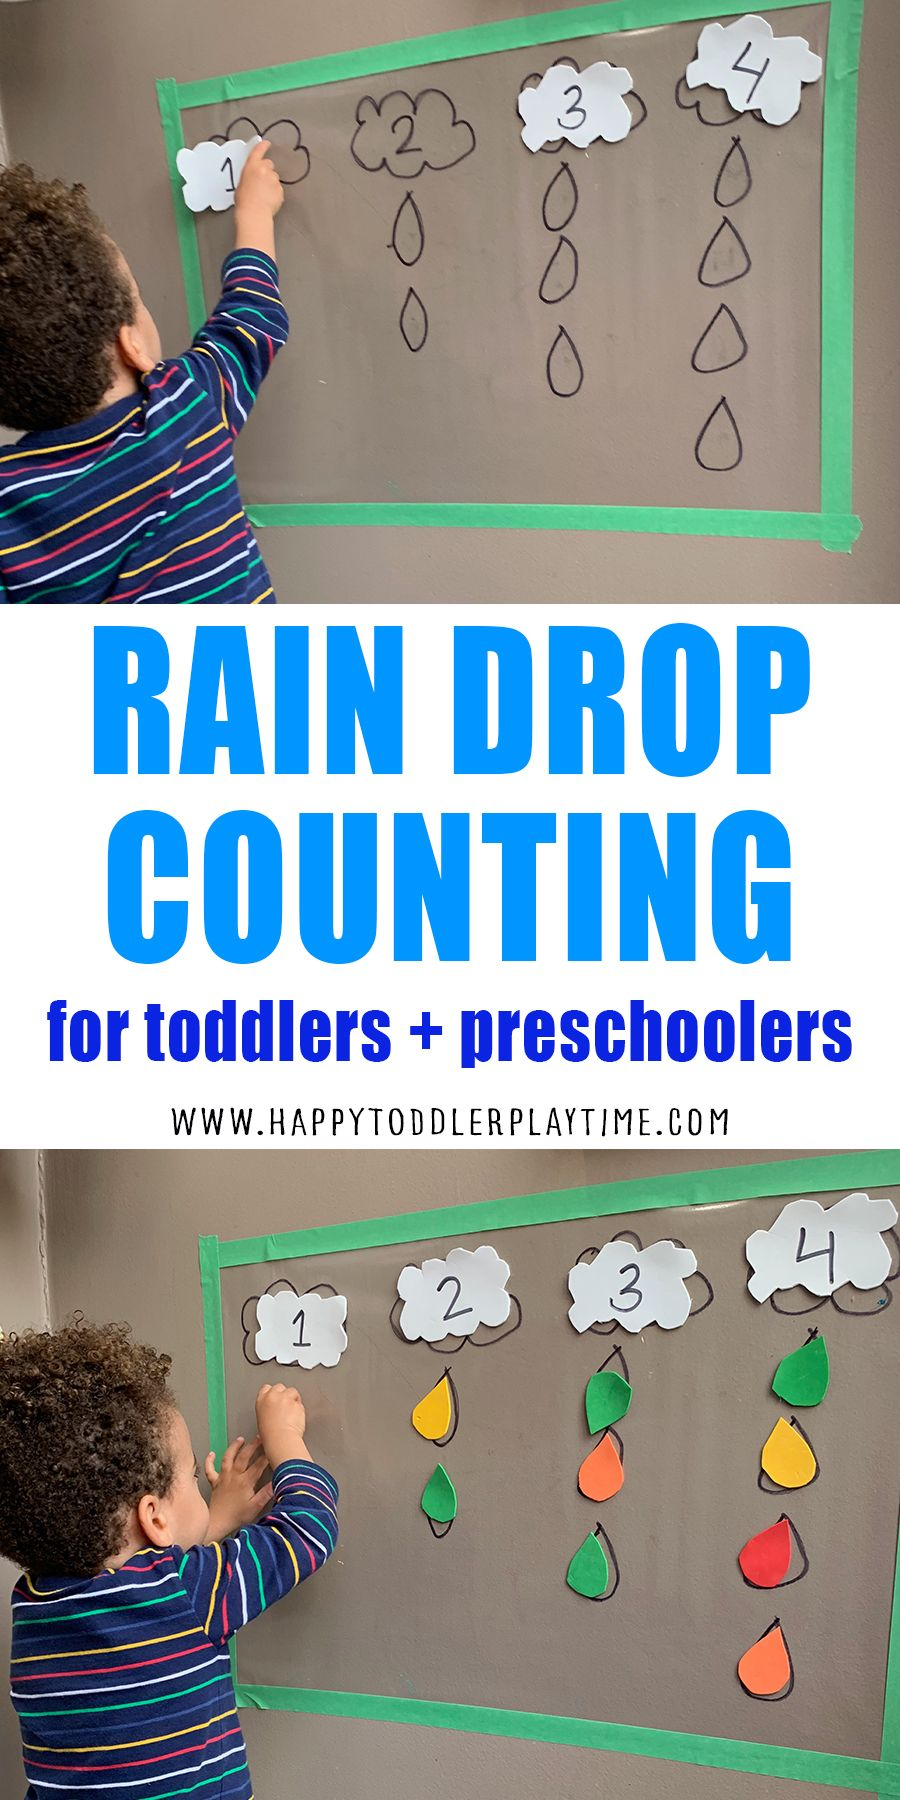 Rain Drop Counting Sticky Wall